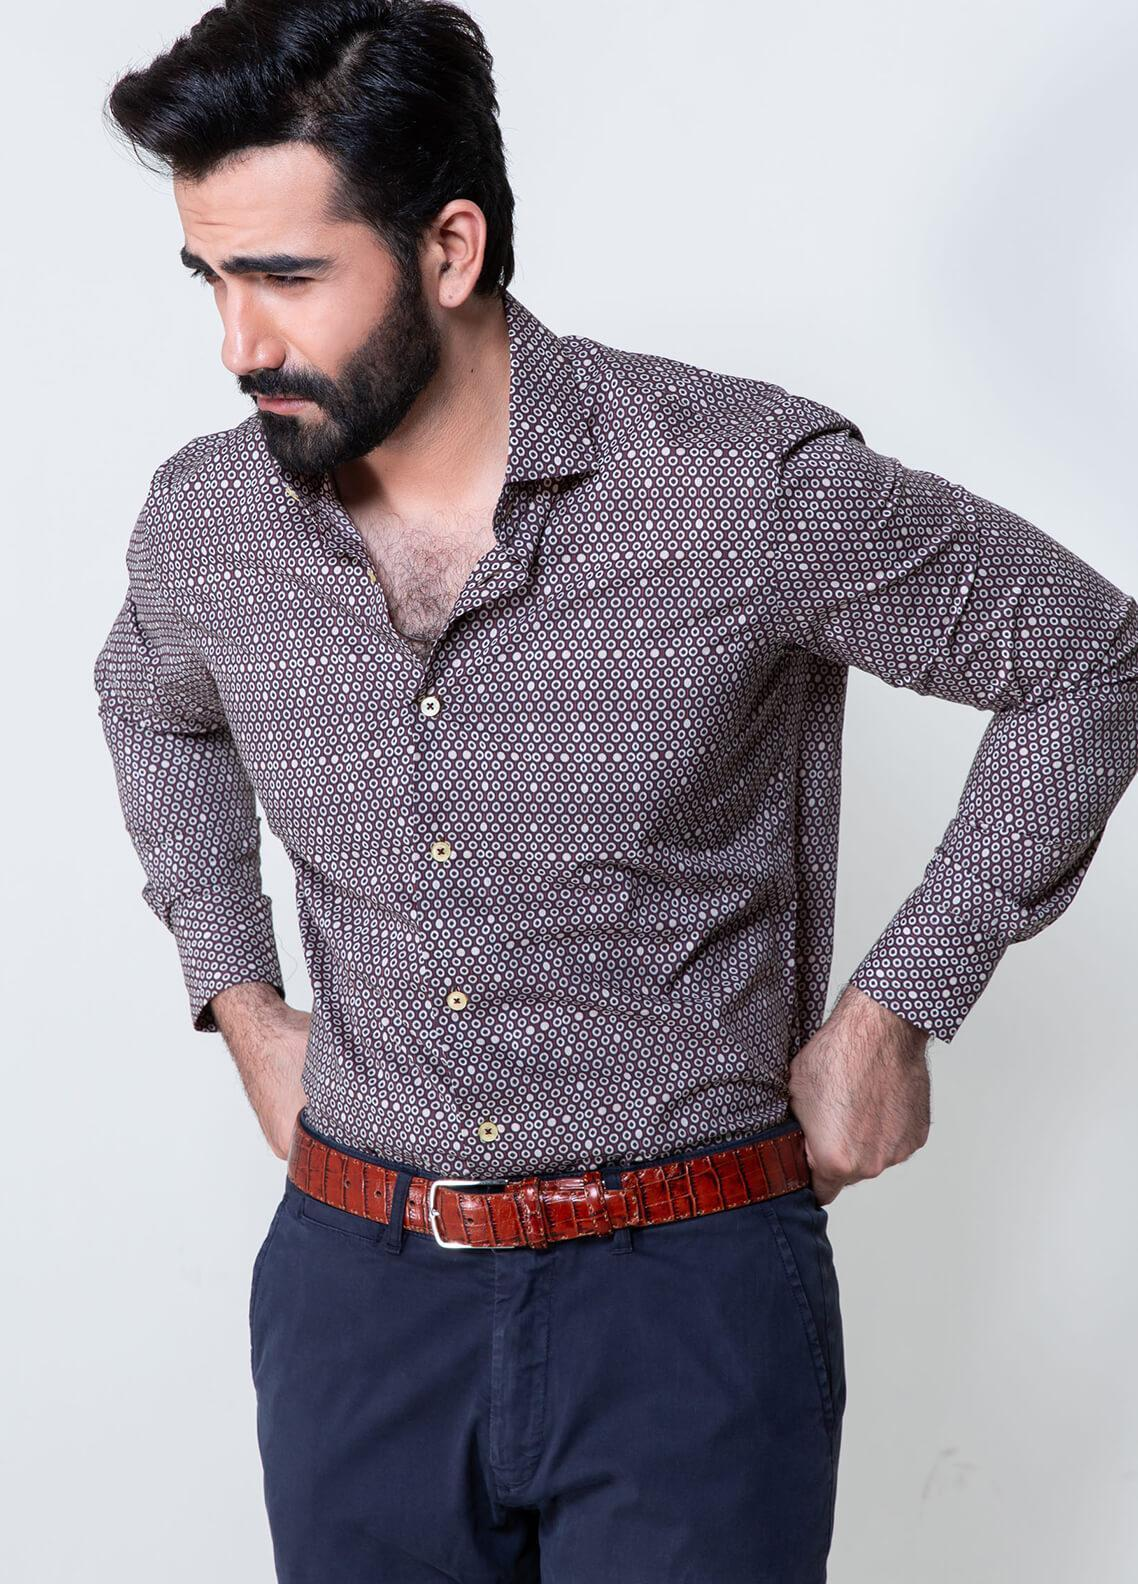 Brumano Cotton Formal Shirts for Men - Burgundy BRM-859